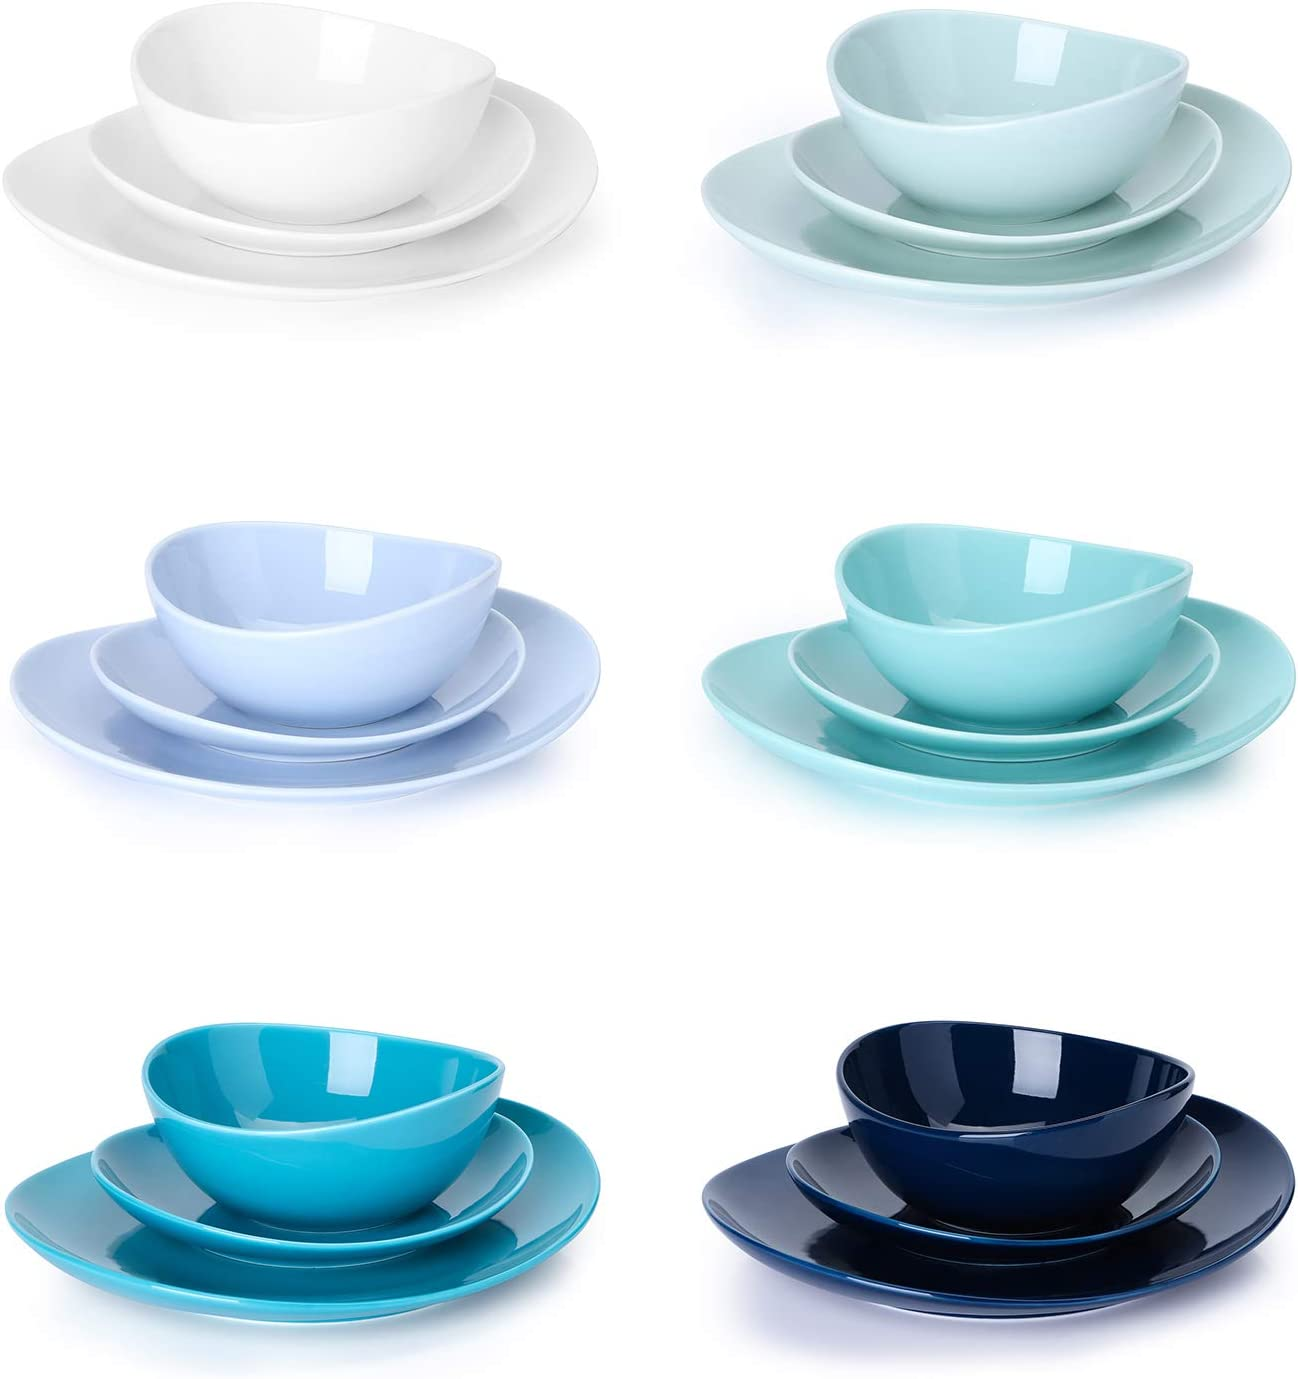 | Sweese 198.003 Porcelain Dinnerware Set, 18-Piece, Service for 6, Cool Assorted Colors: Dinnerware Sets